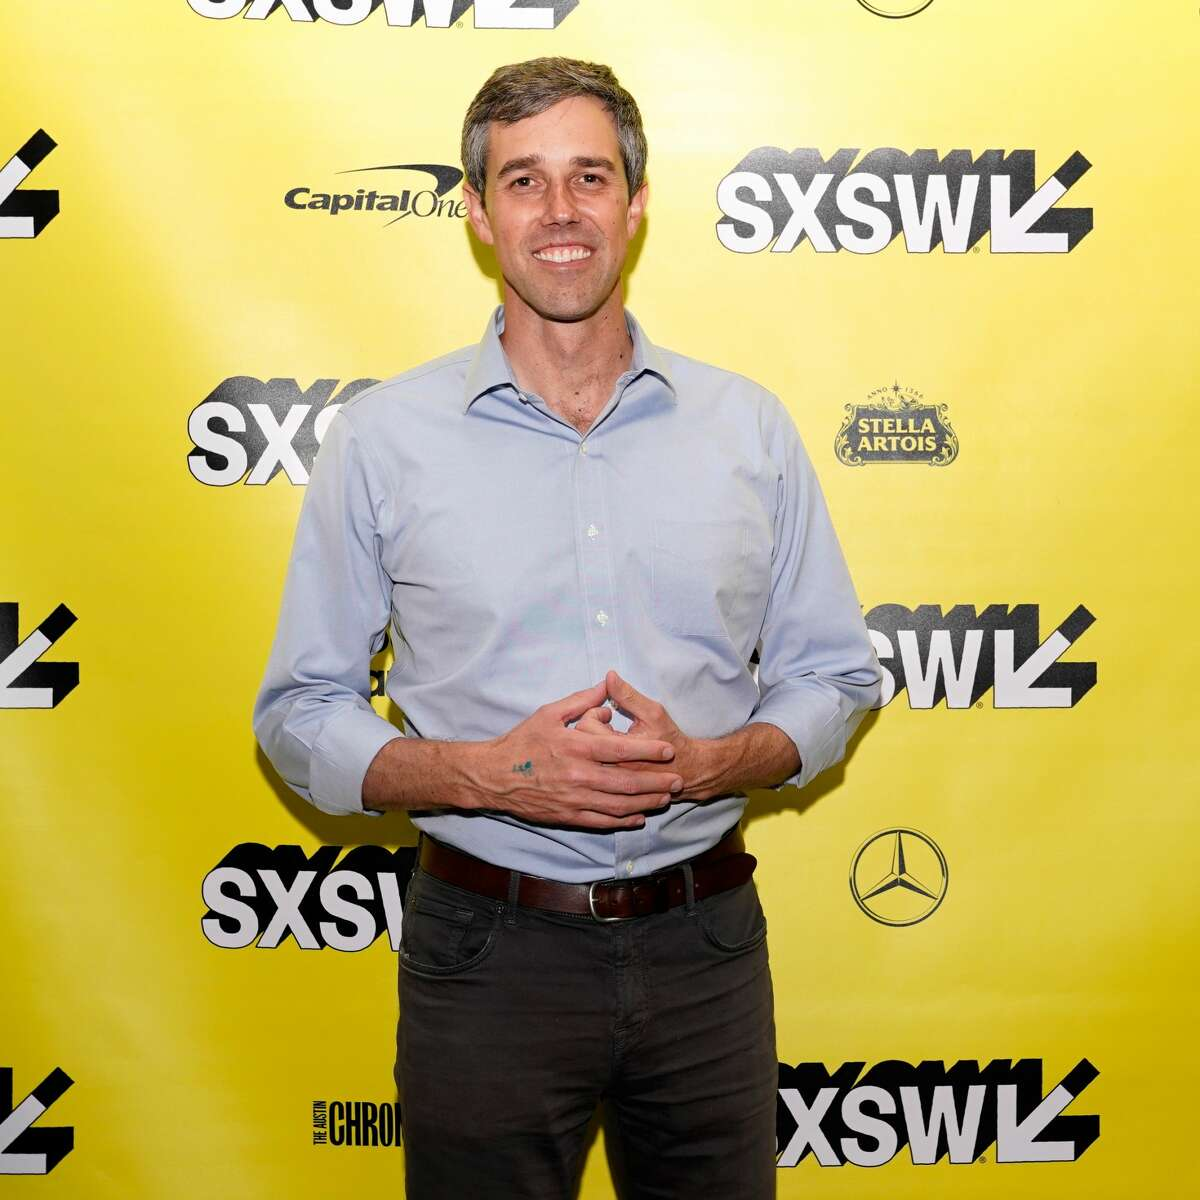 """AUSTIN, TX - MARCH 09: Beto O'Rourke attends """"The River and the Wall"""" Premiere during the 2019 SXSW Conference and Festivals at JW Marriott Austin on March 9, 2019 in Austin, Texas. (Photo by Ismael Quintanilla/Getty Images for SXSW)"""